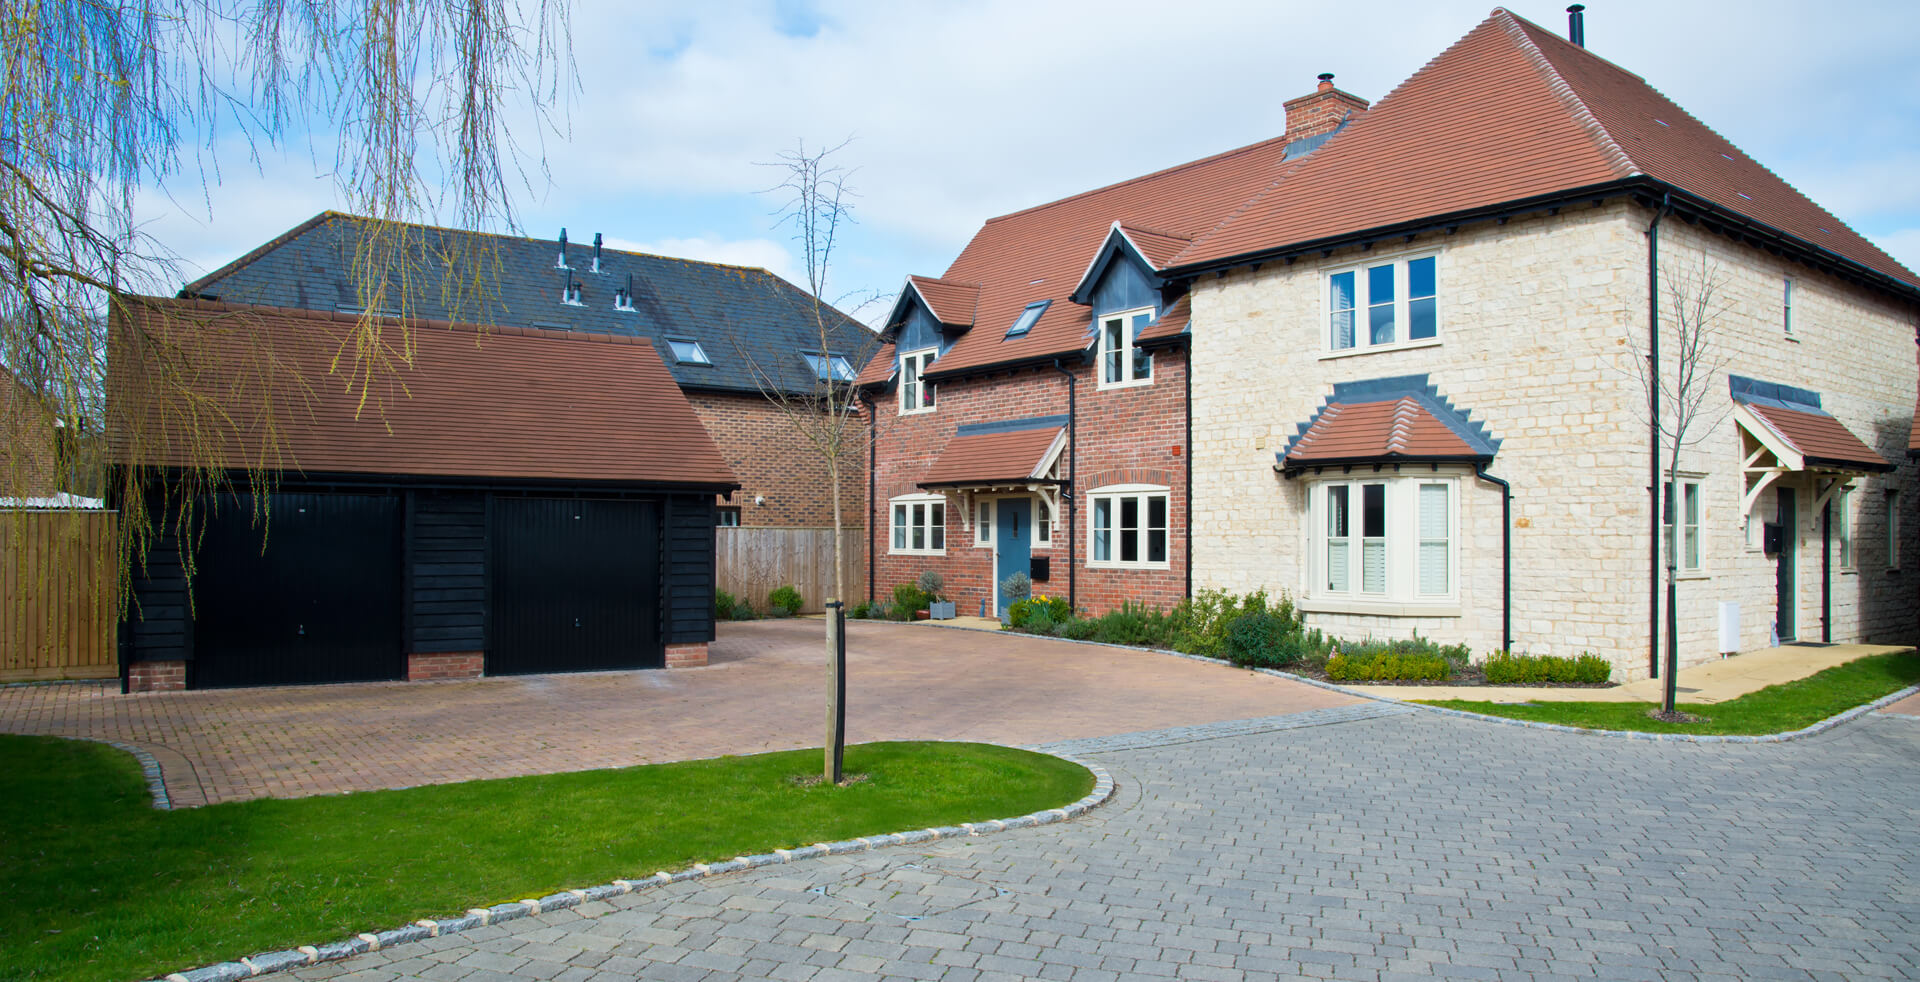 We have extensive knowledge & experience of all types driveways which will provide years of service for your home or business premises.